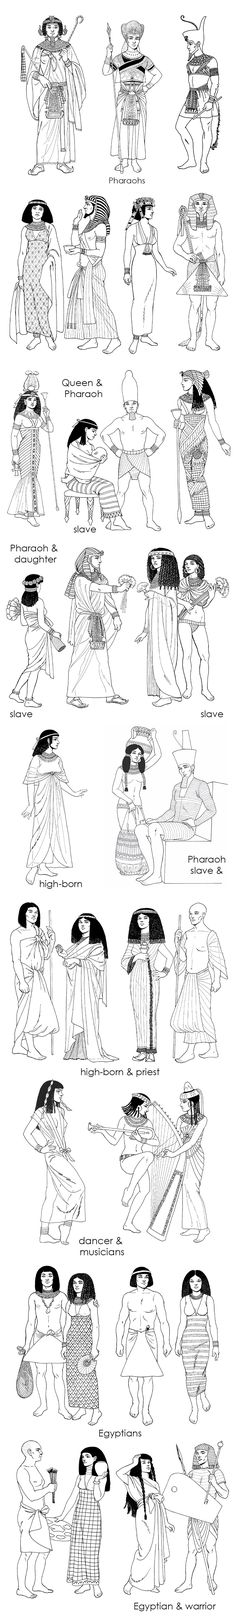 #Pharaoh, #queen, #slave, #egyptians, #Egypt